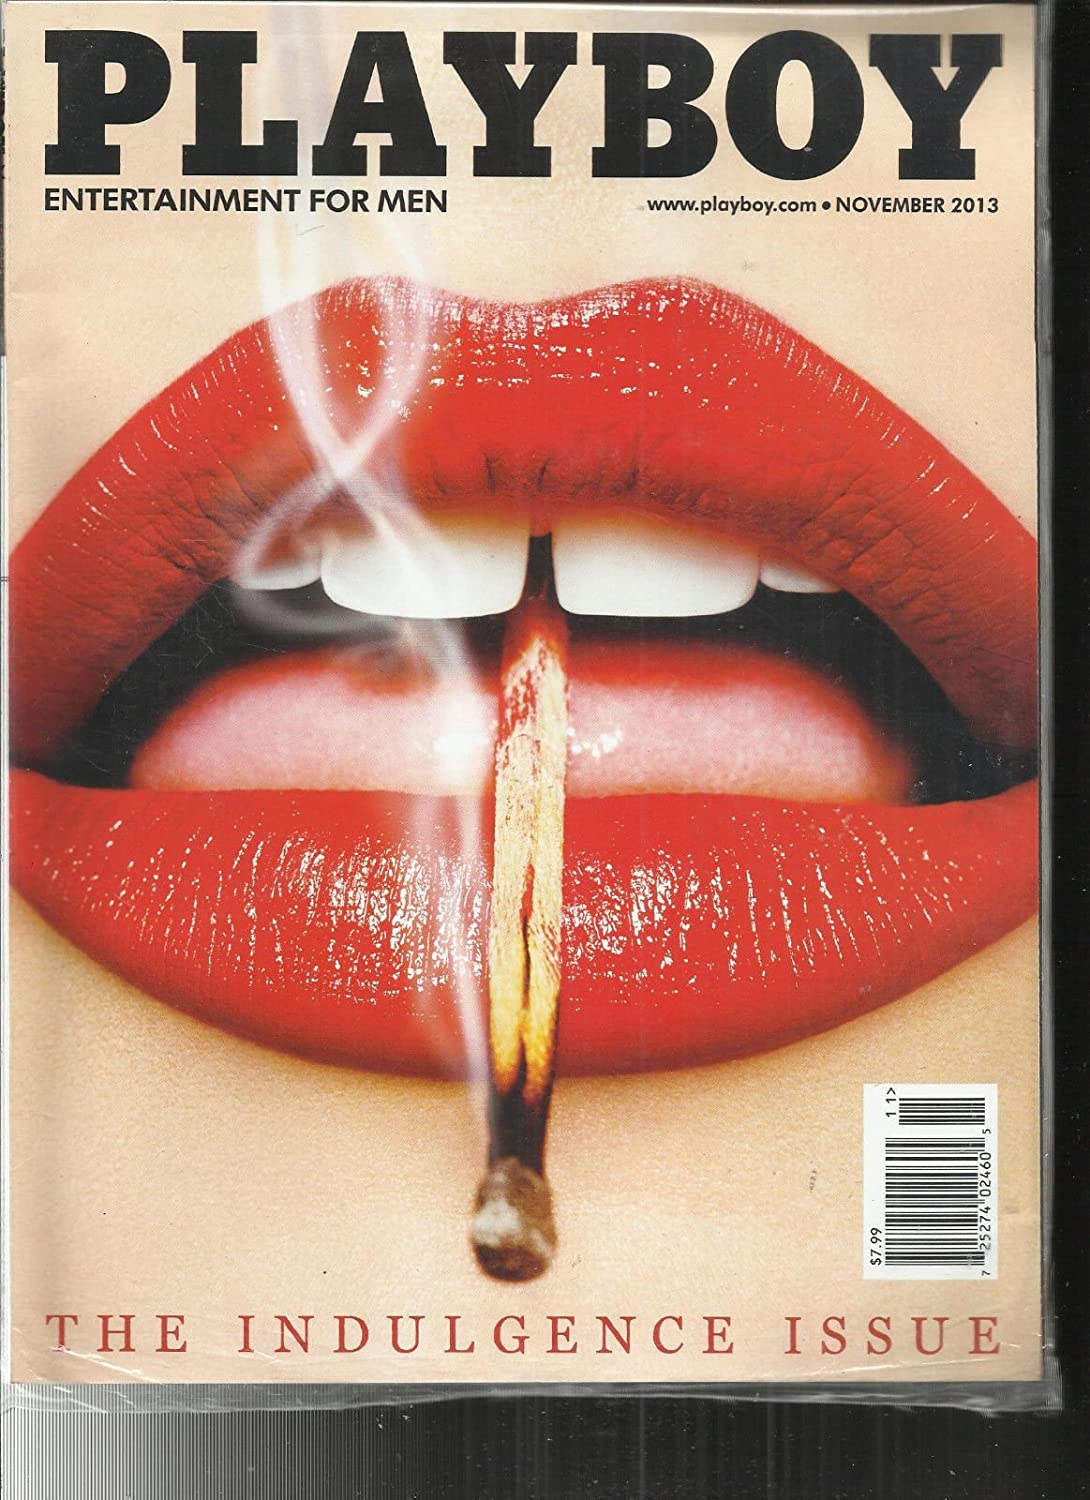 PLAYBOY MAGAZINE, ENTERTAINMENT FOR MEN THE INDULGENCE ISSUE NOVEMBER, 2013 s3457